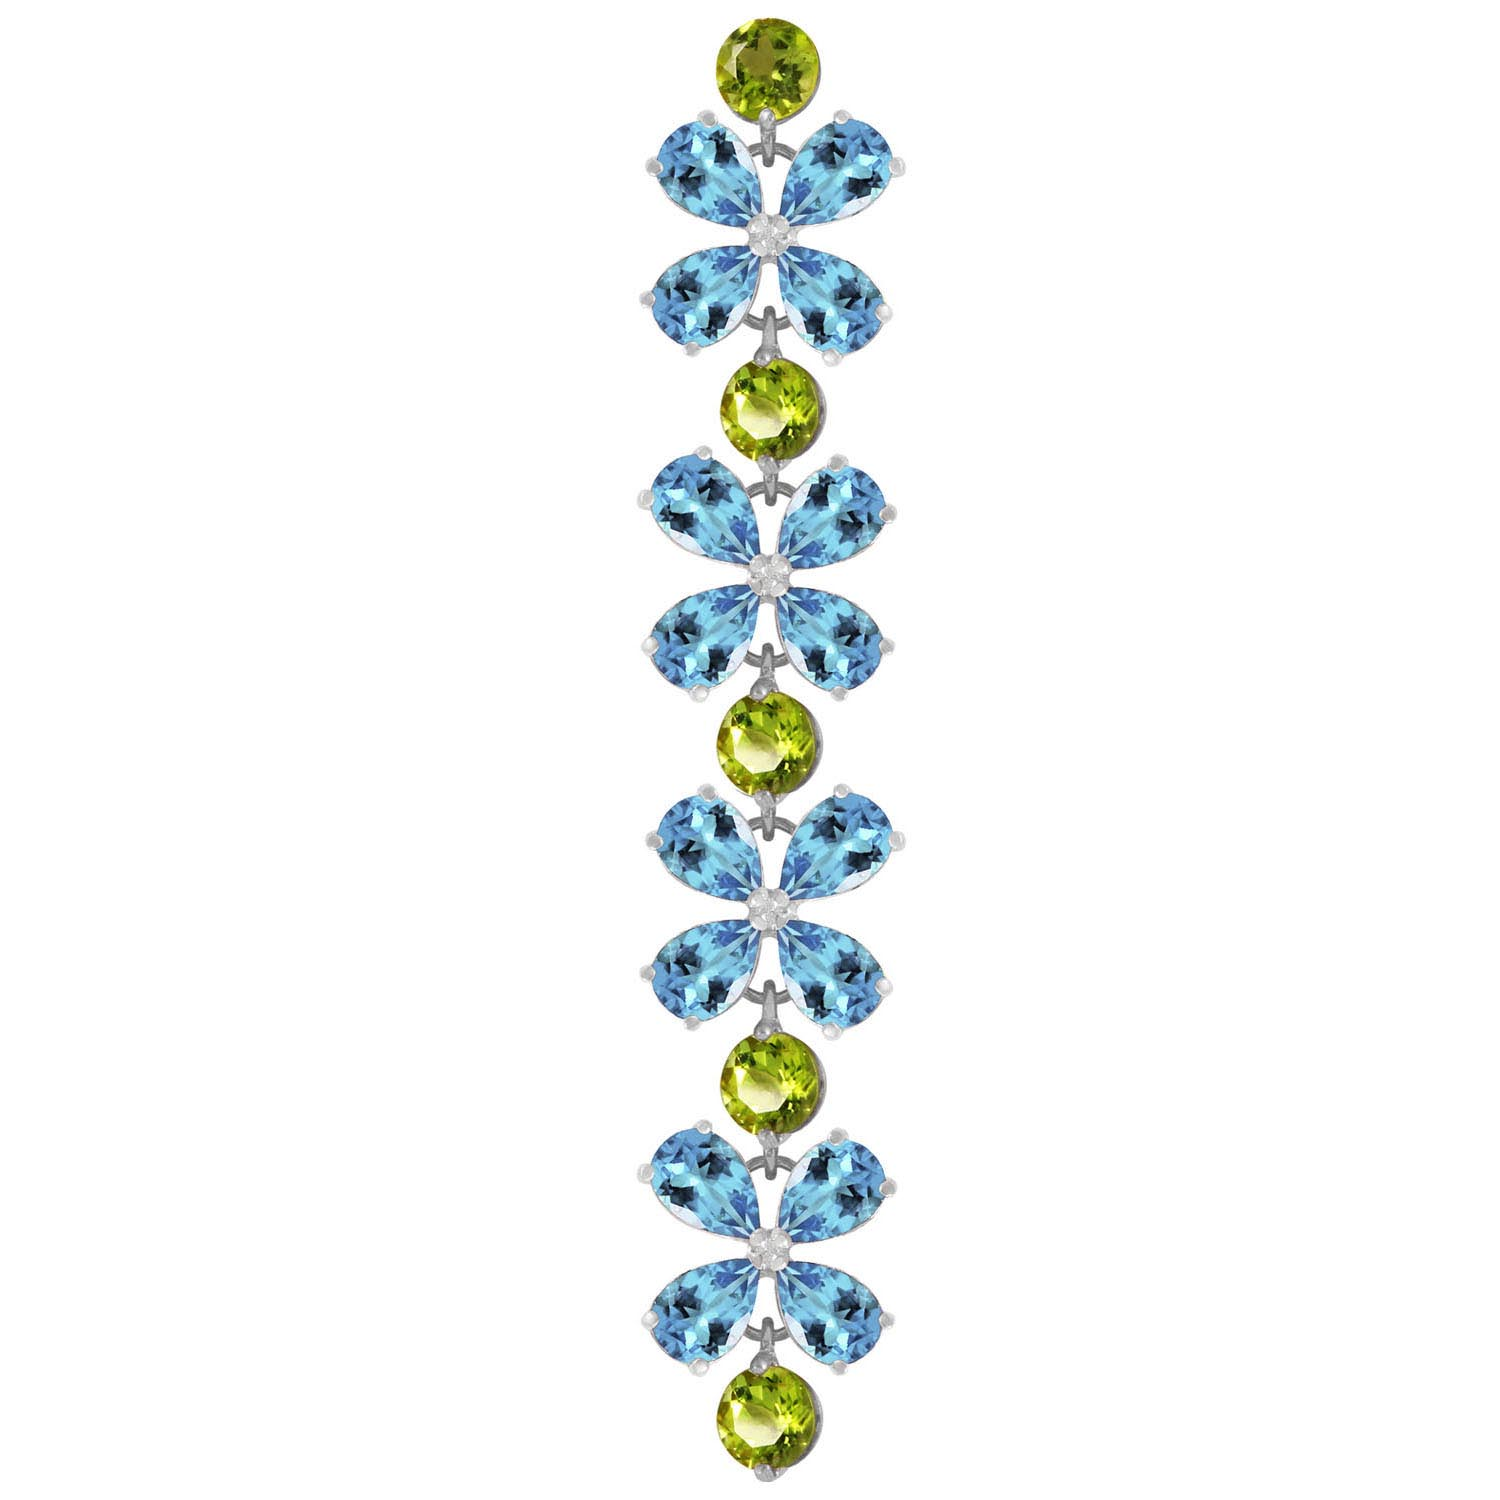 Blue Topaz and Peridot Blossom Bracelet 20.7ctw in 9ct White Gold